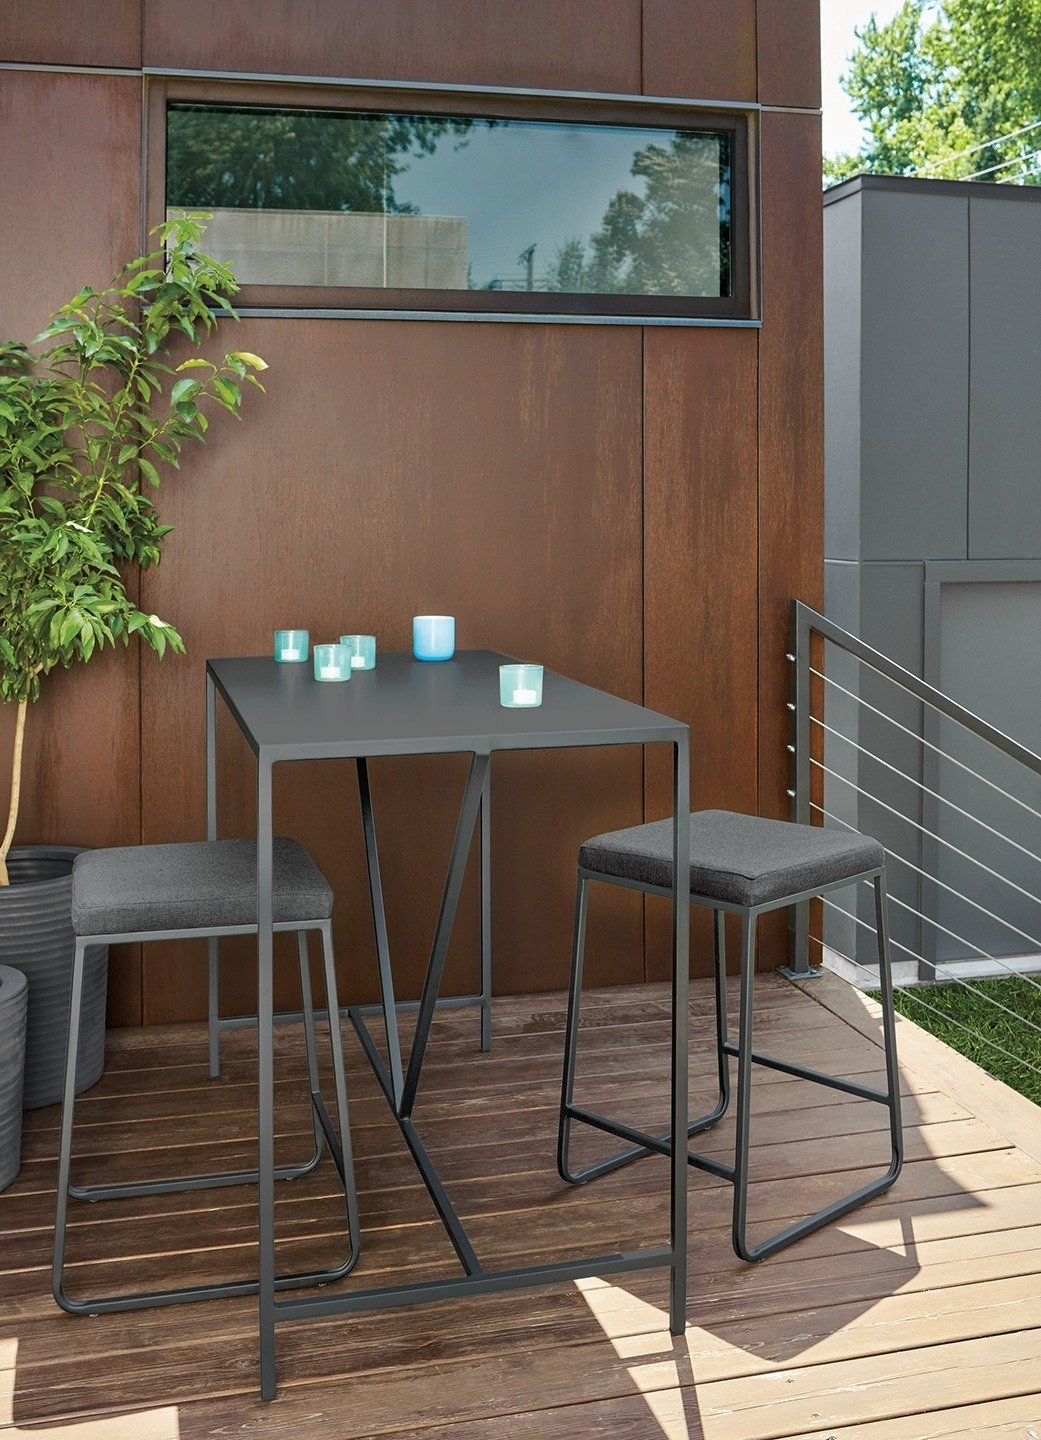 Outdoor and Back Yard Slim counter table, Rollins stools  Photo 5 of 8 in Expert Design Advice: Outdoor Dining Spaces